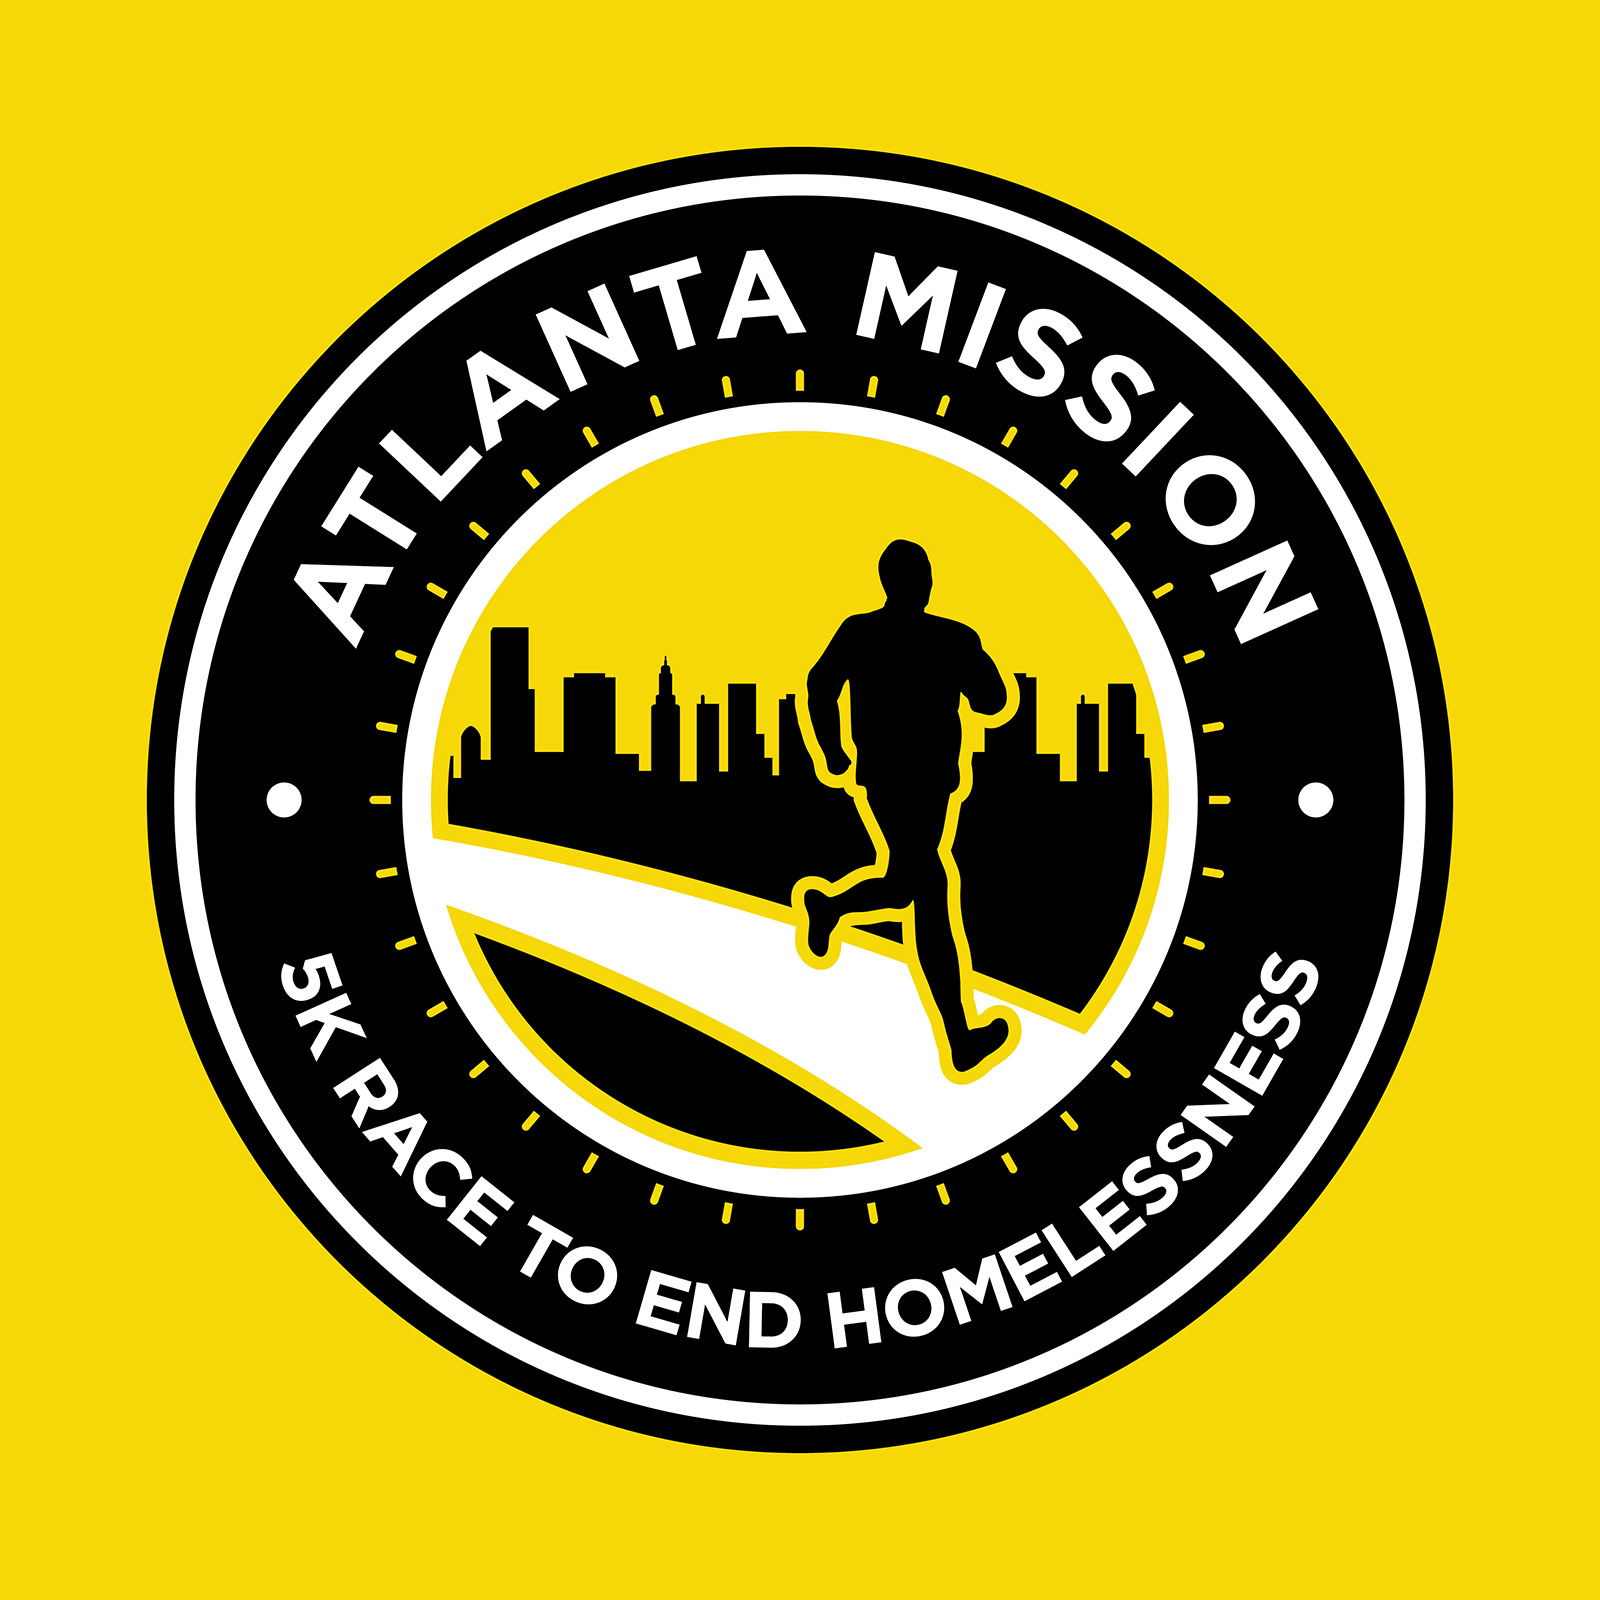 AtlMission_5K_Facebook_Profile.jpg